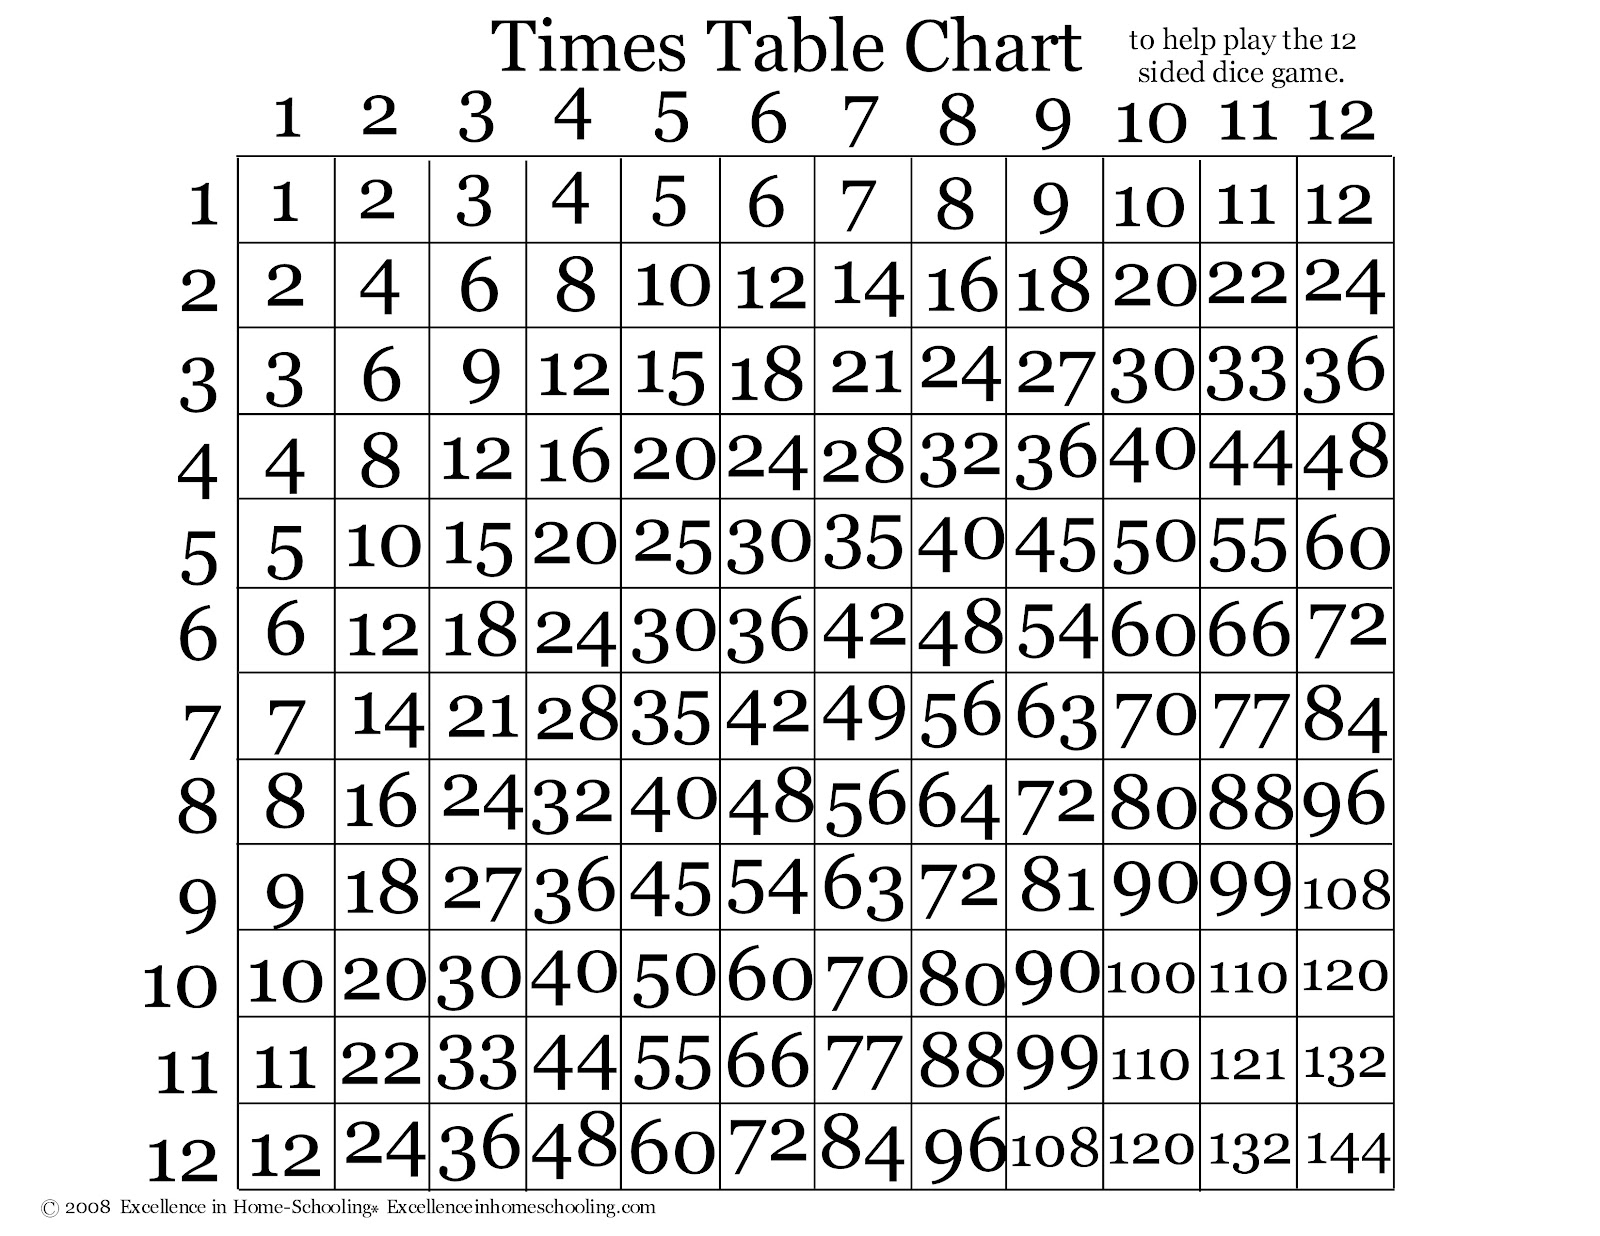 Home images times table bingo cards times table bingo cards facebook